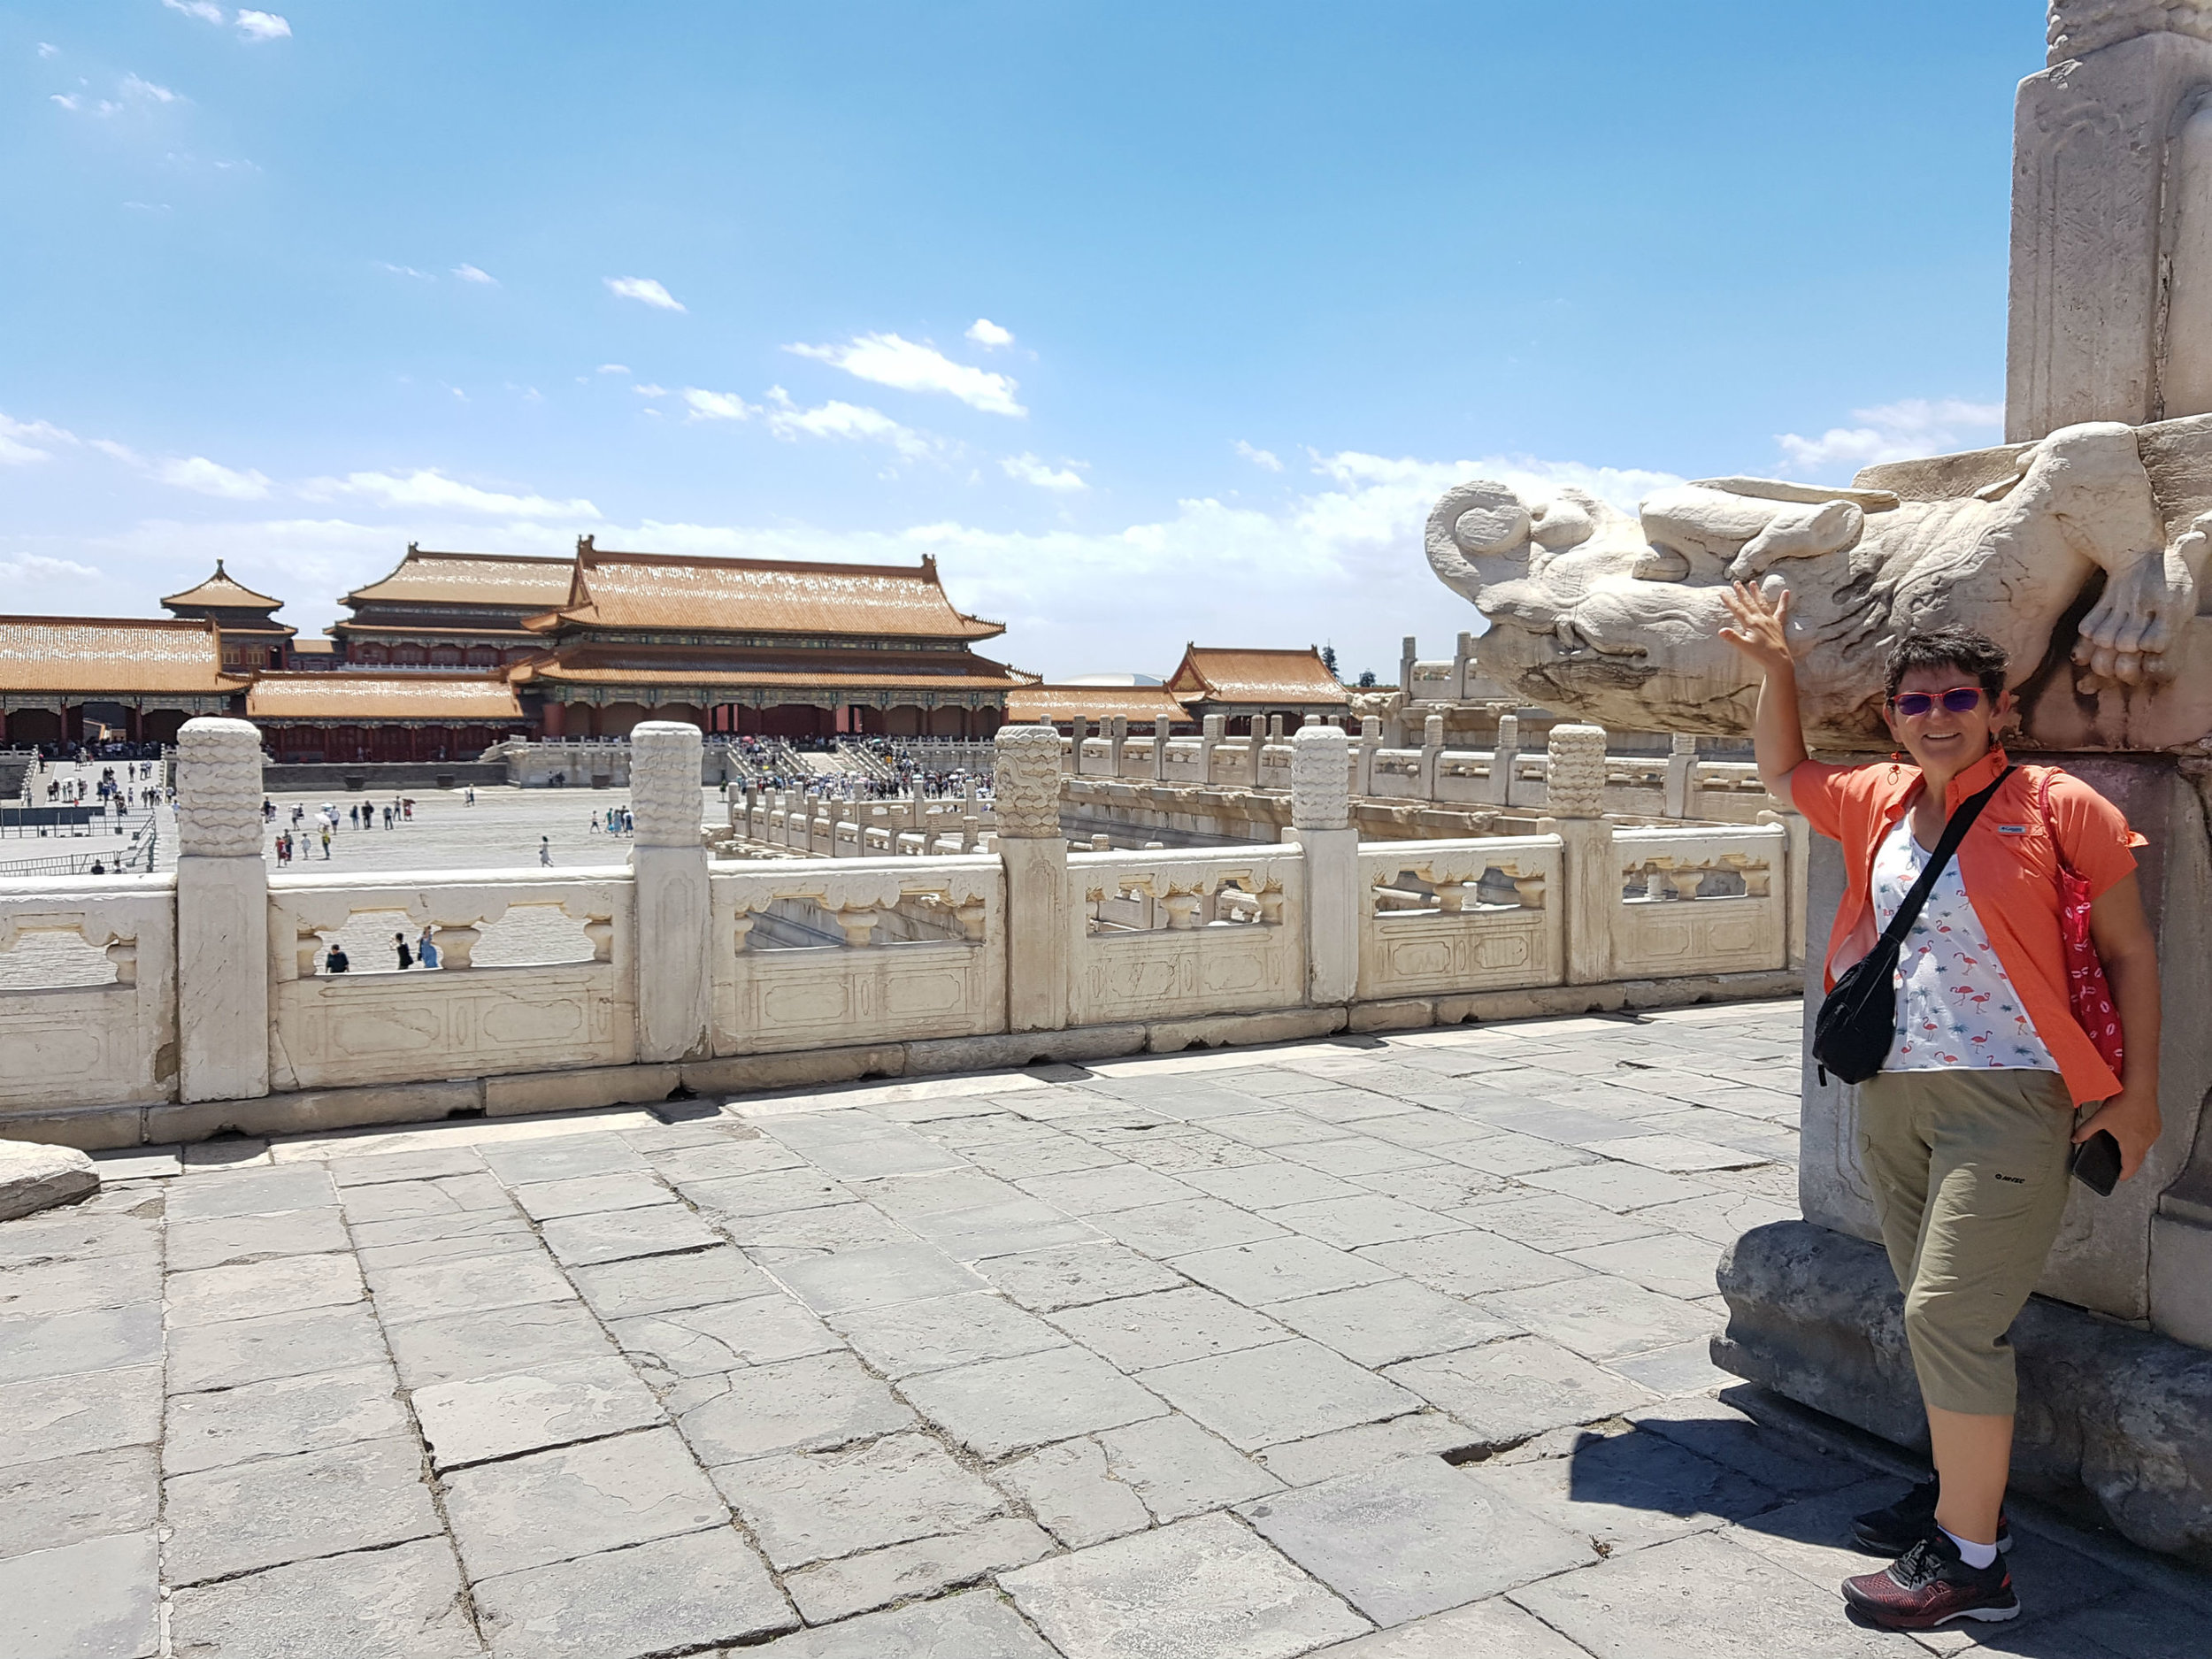 I took this snapshot inside the Forbidden City when the hordes of tourists didn't block our view